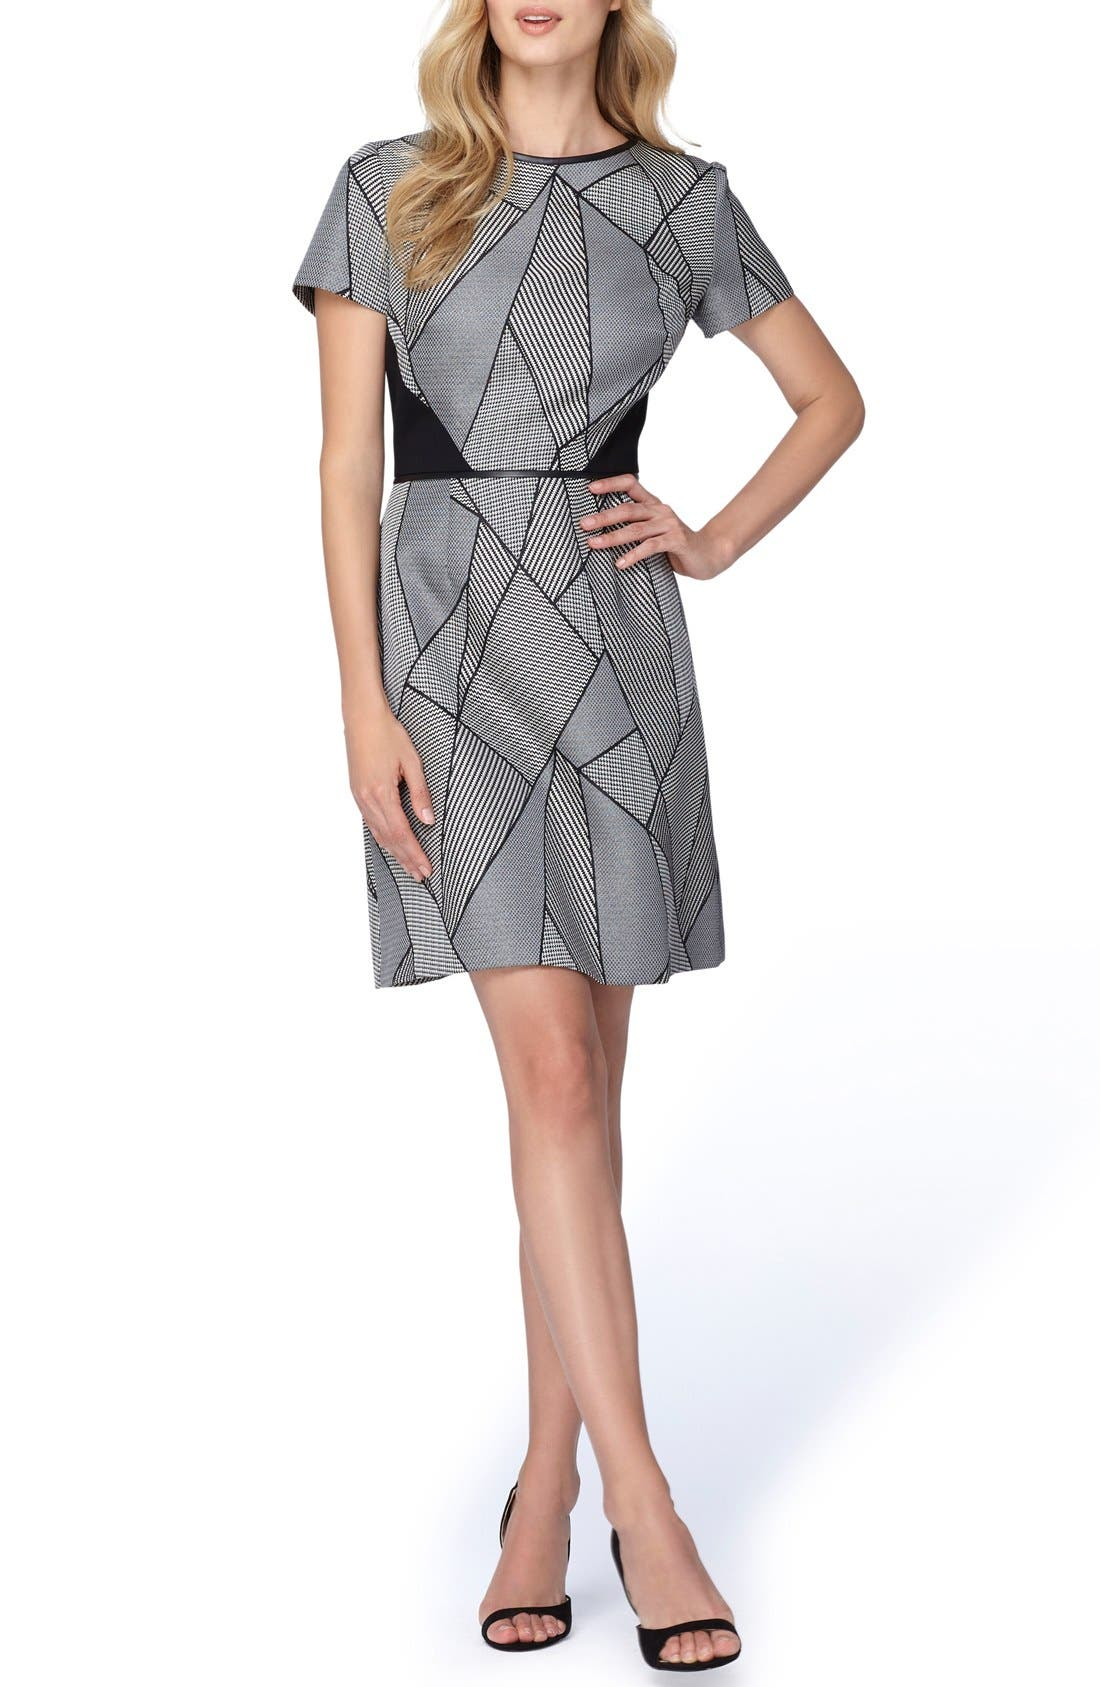 Alternate Image 1 Selected - Tahari Geometric Jacquard A-Line Dress (Regular & Petite)